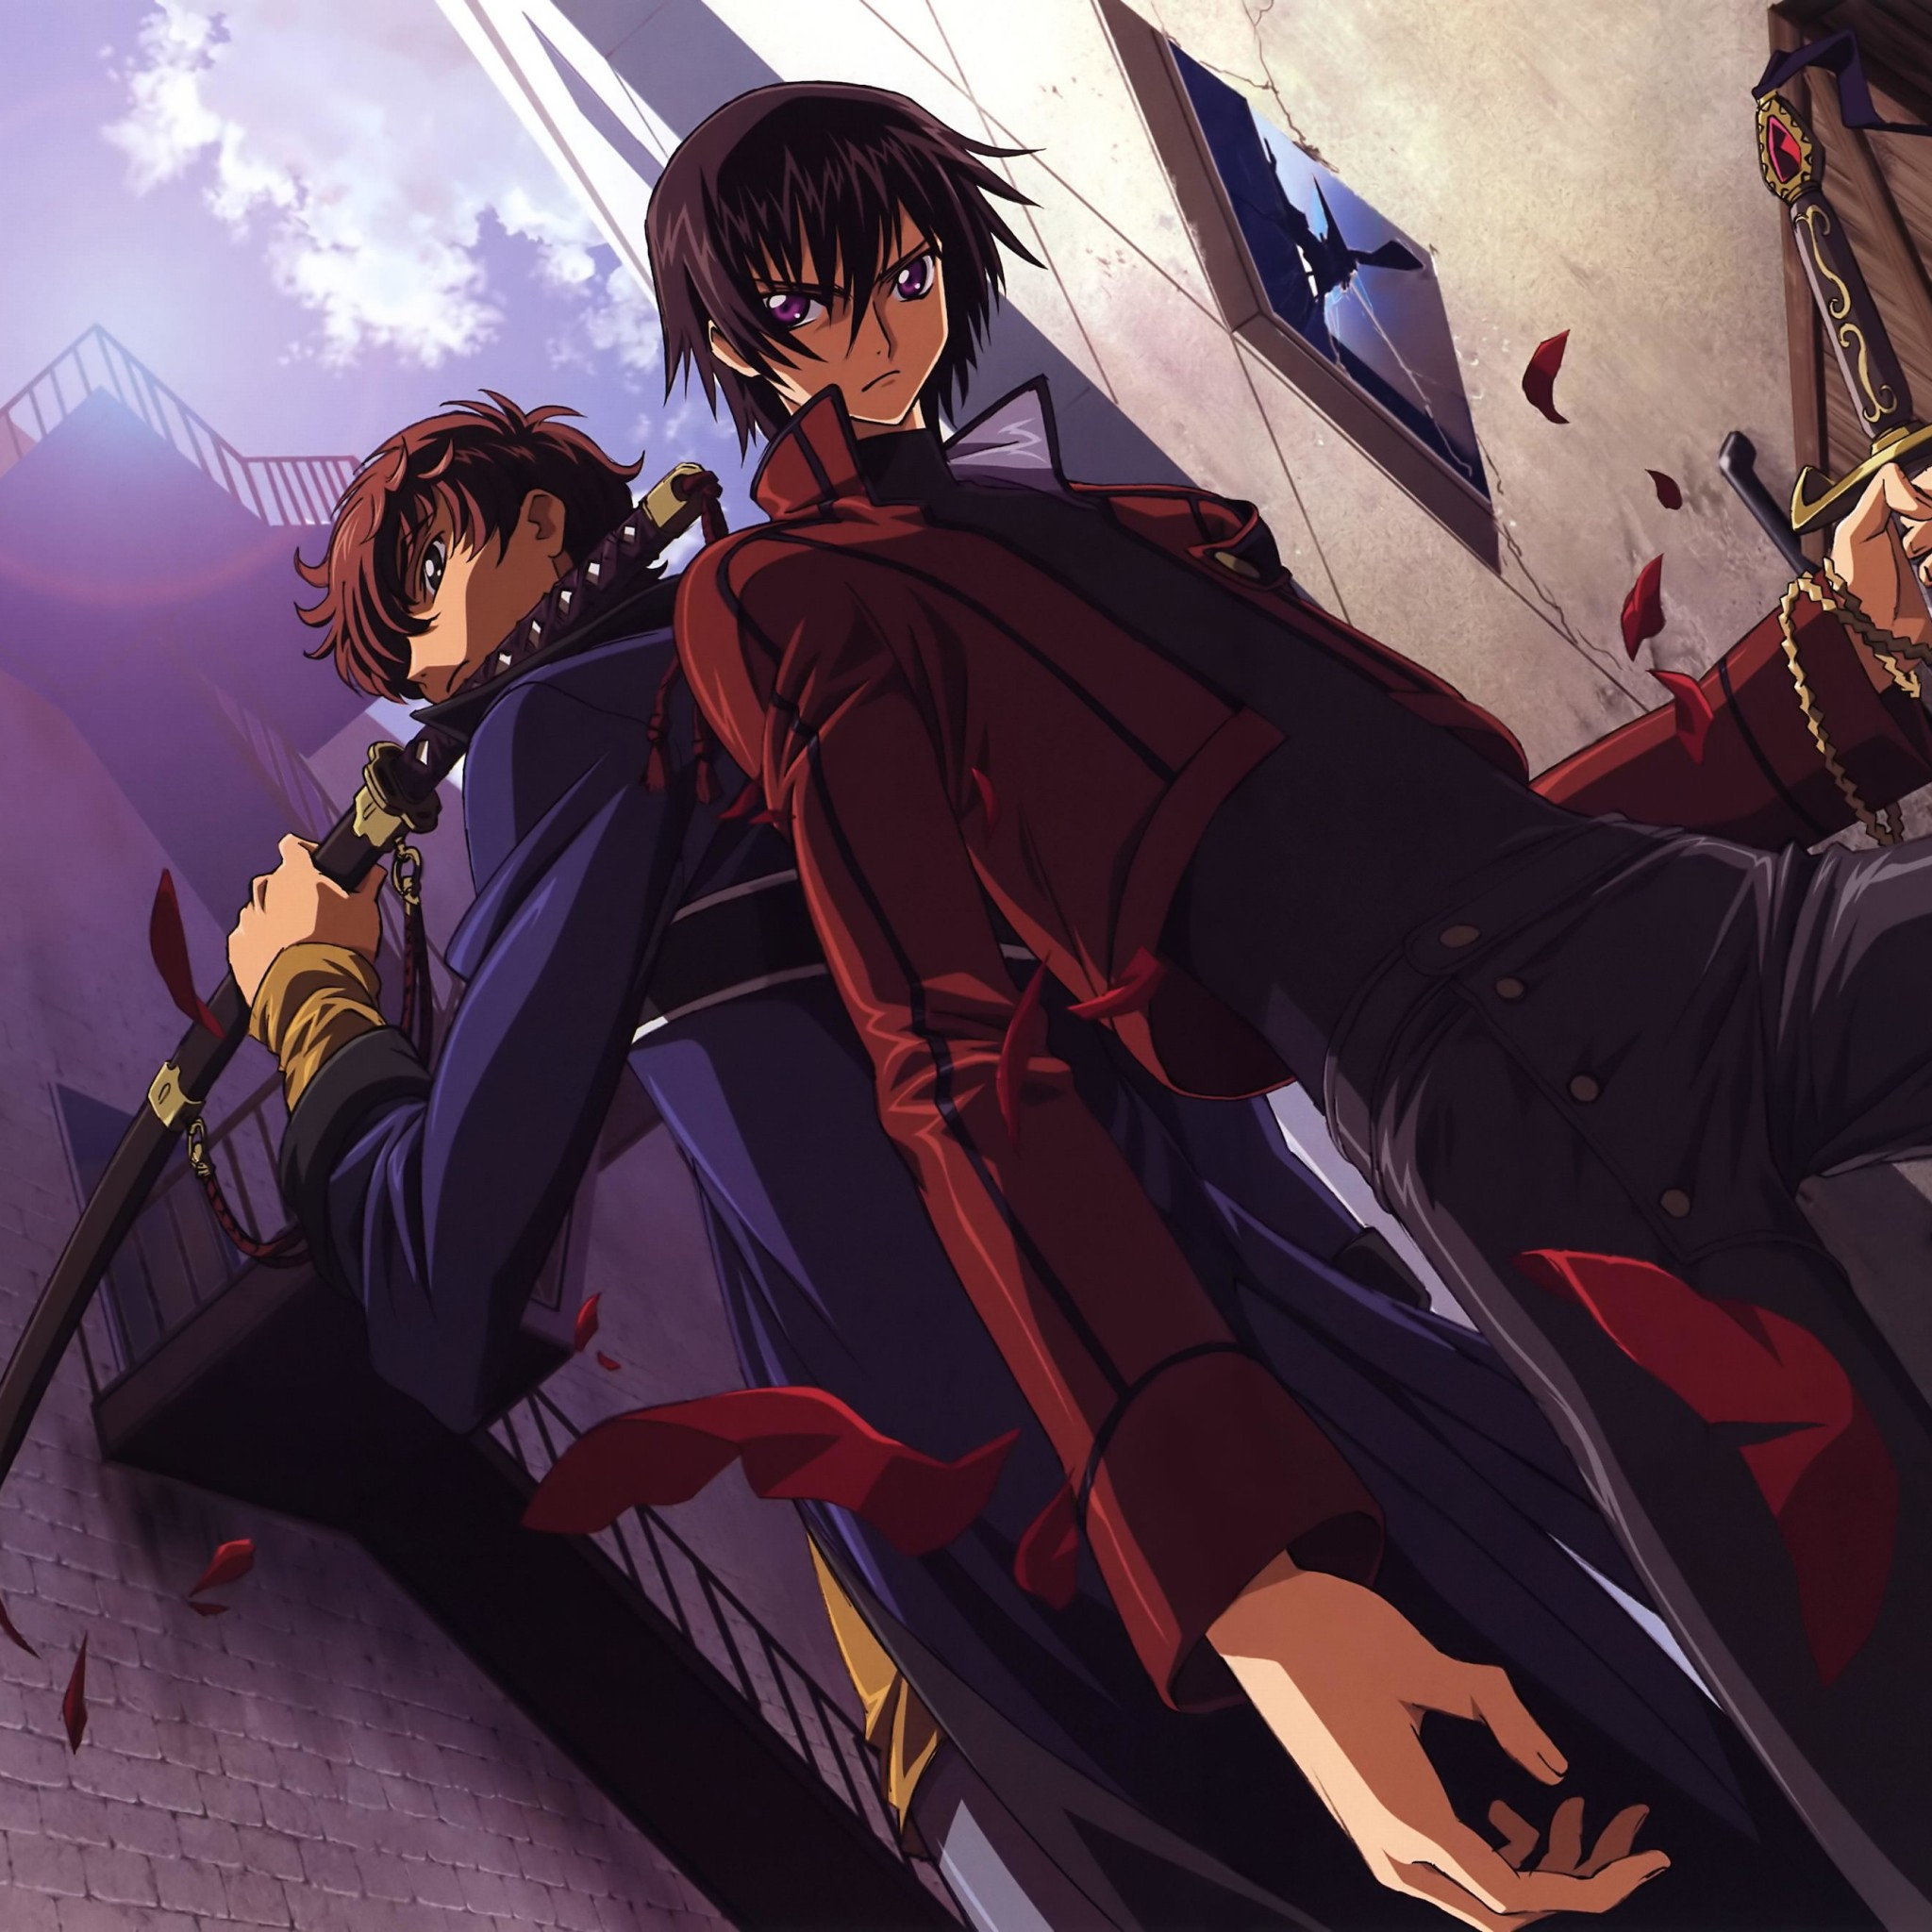 Code Geass Wallpaper for Google Nexus 9